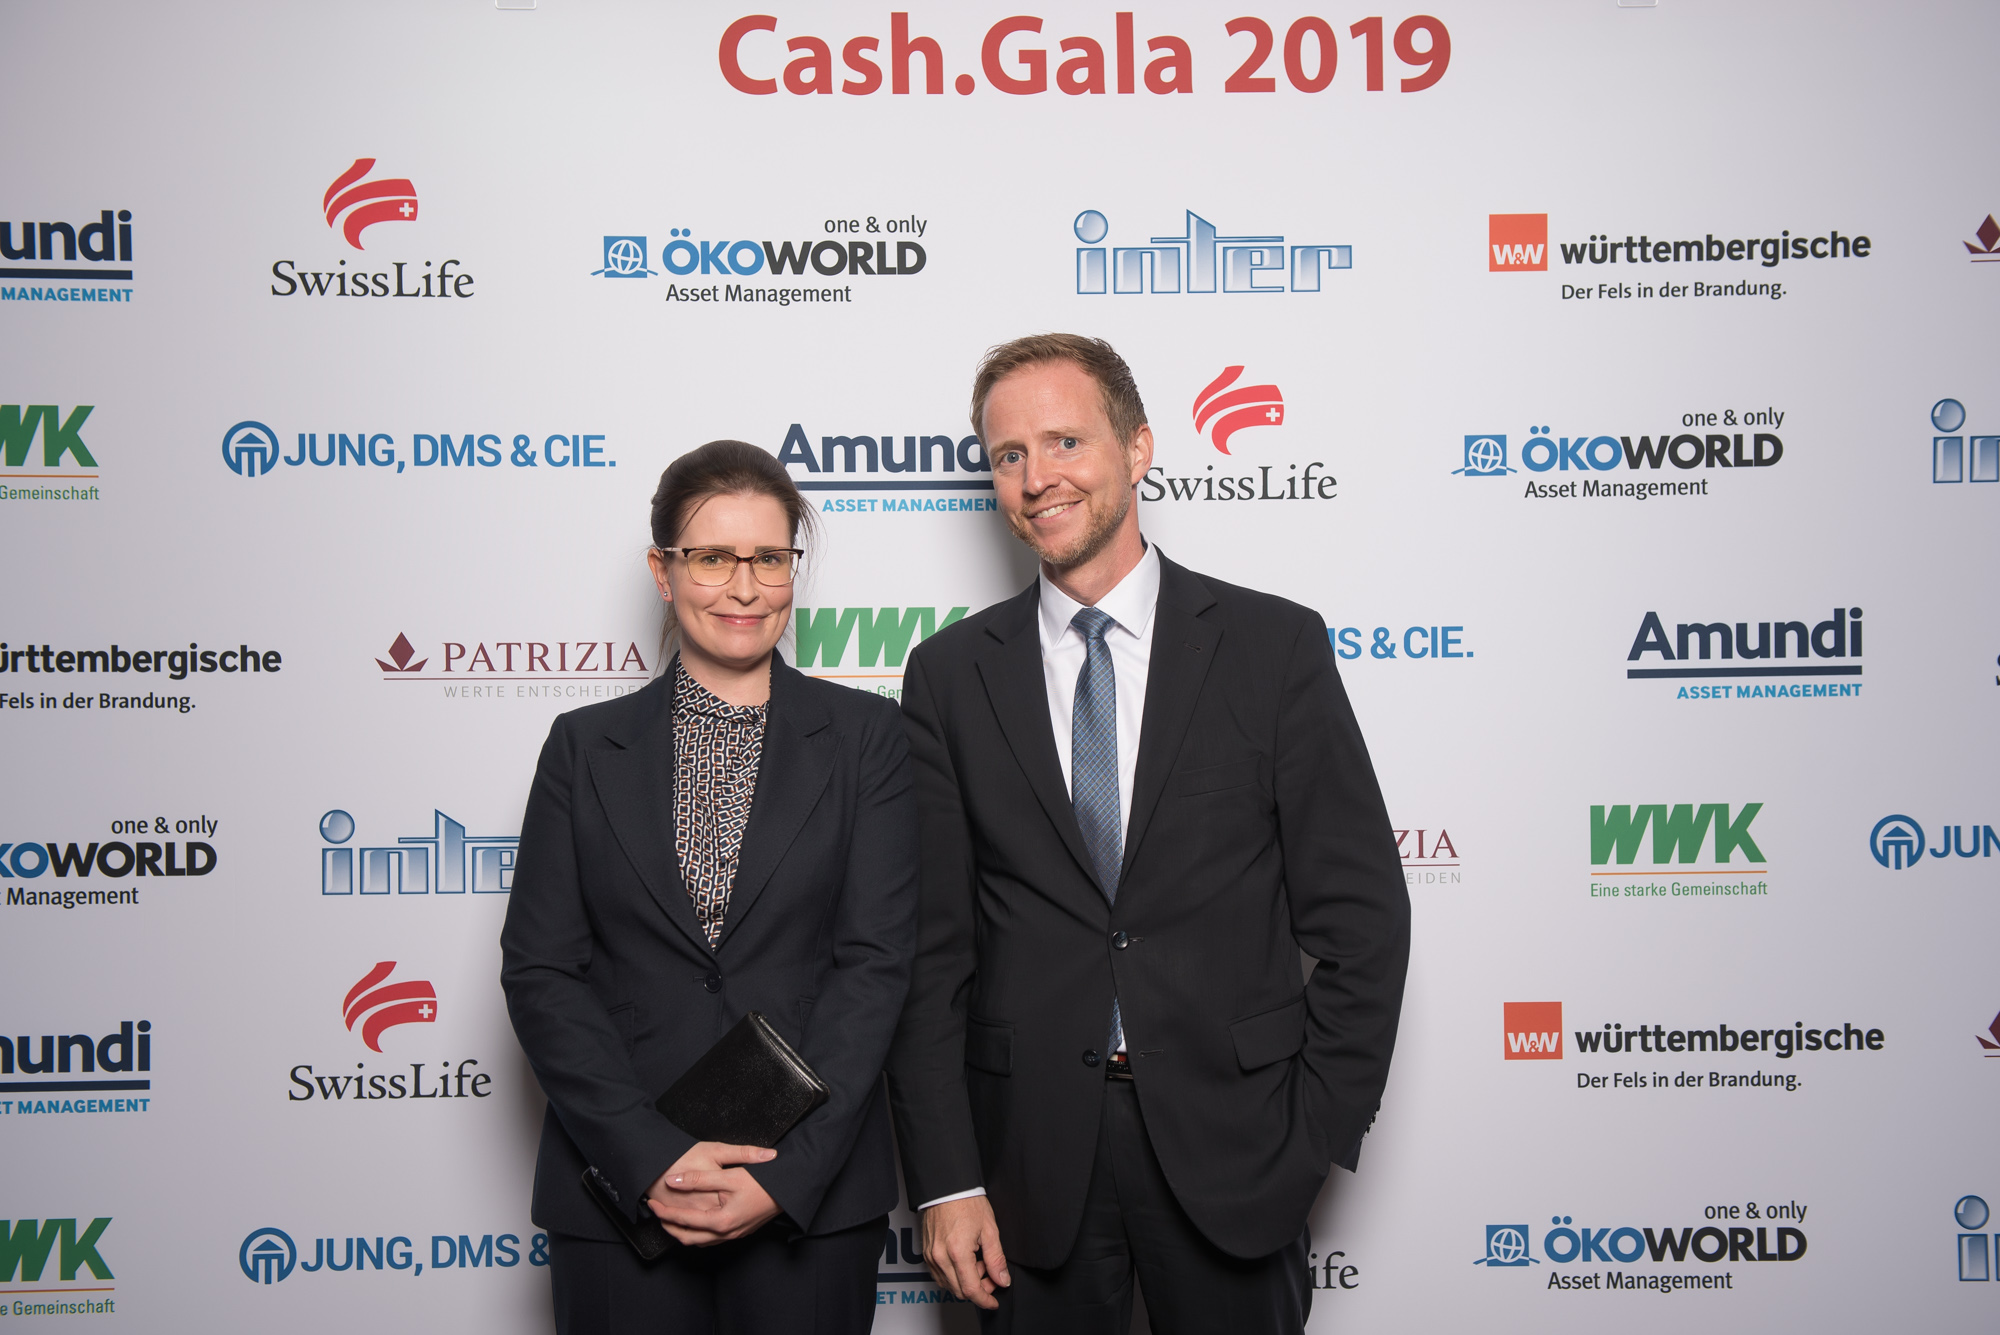 CashGala 2019 0046 AM DSC7077 in Cash.Gala 2019